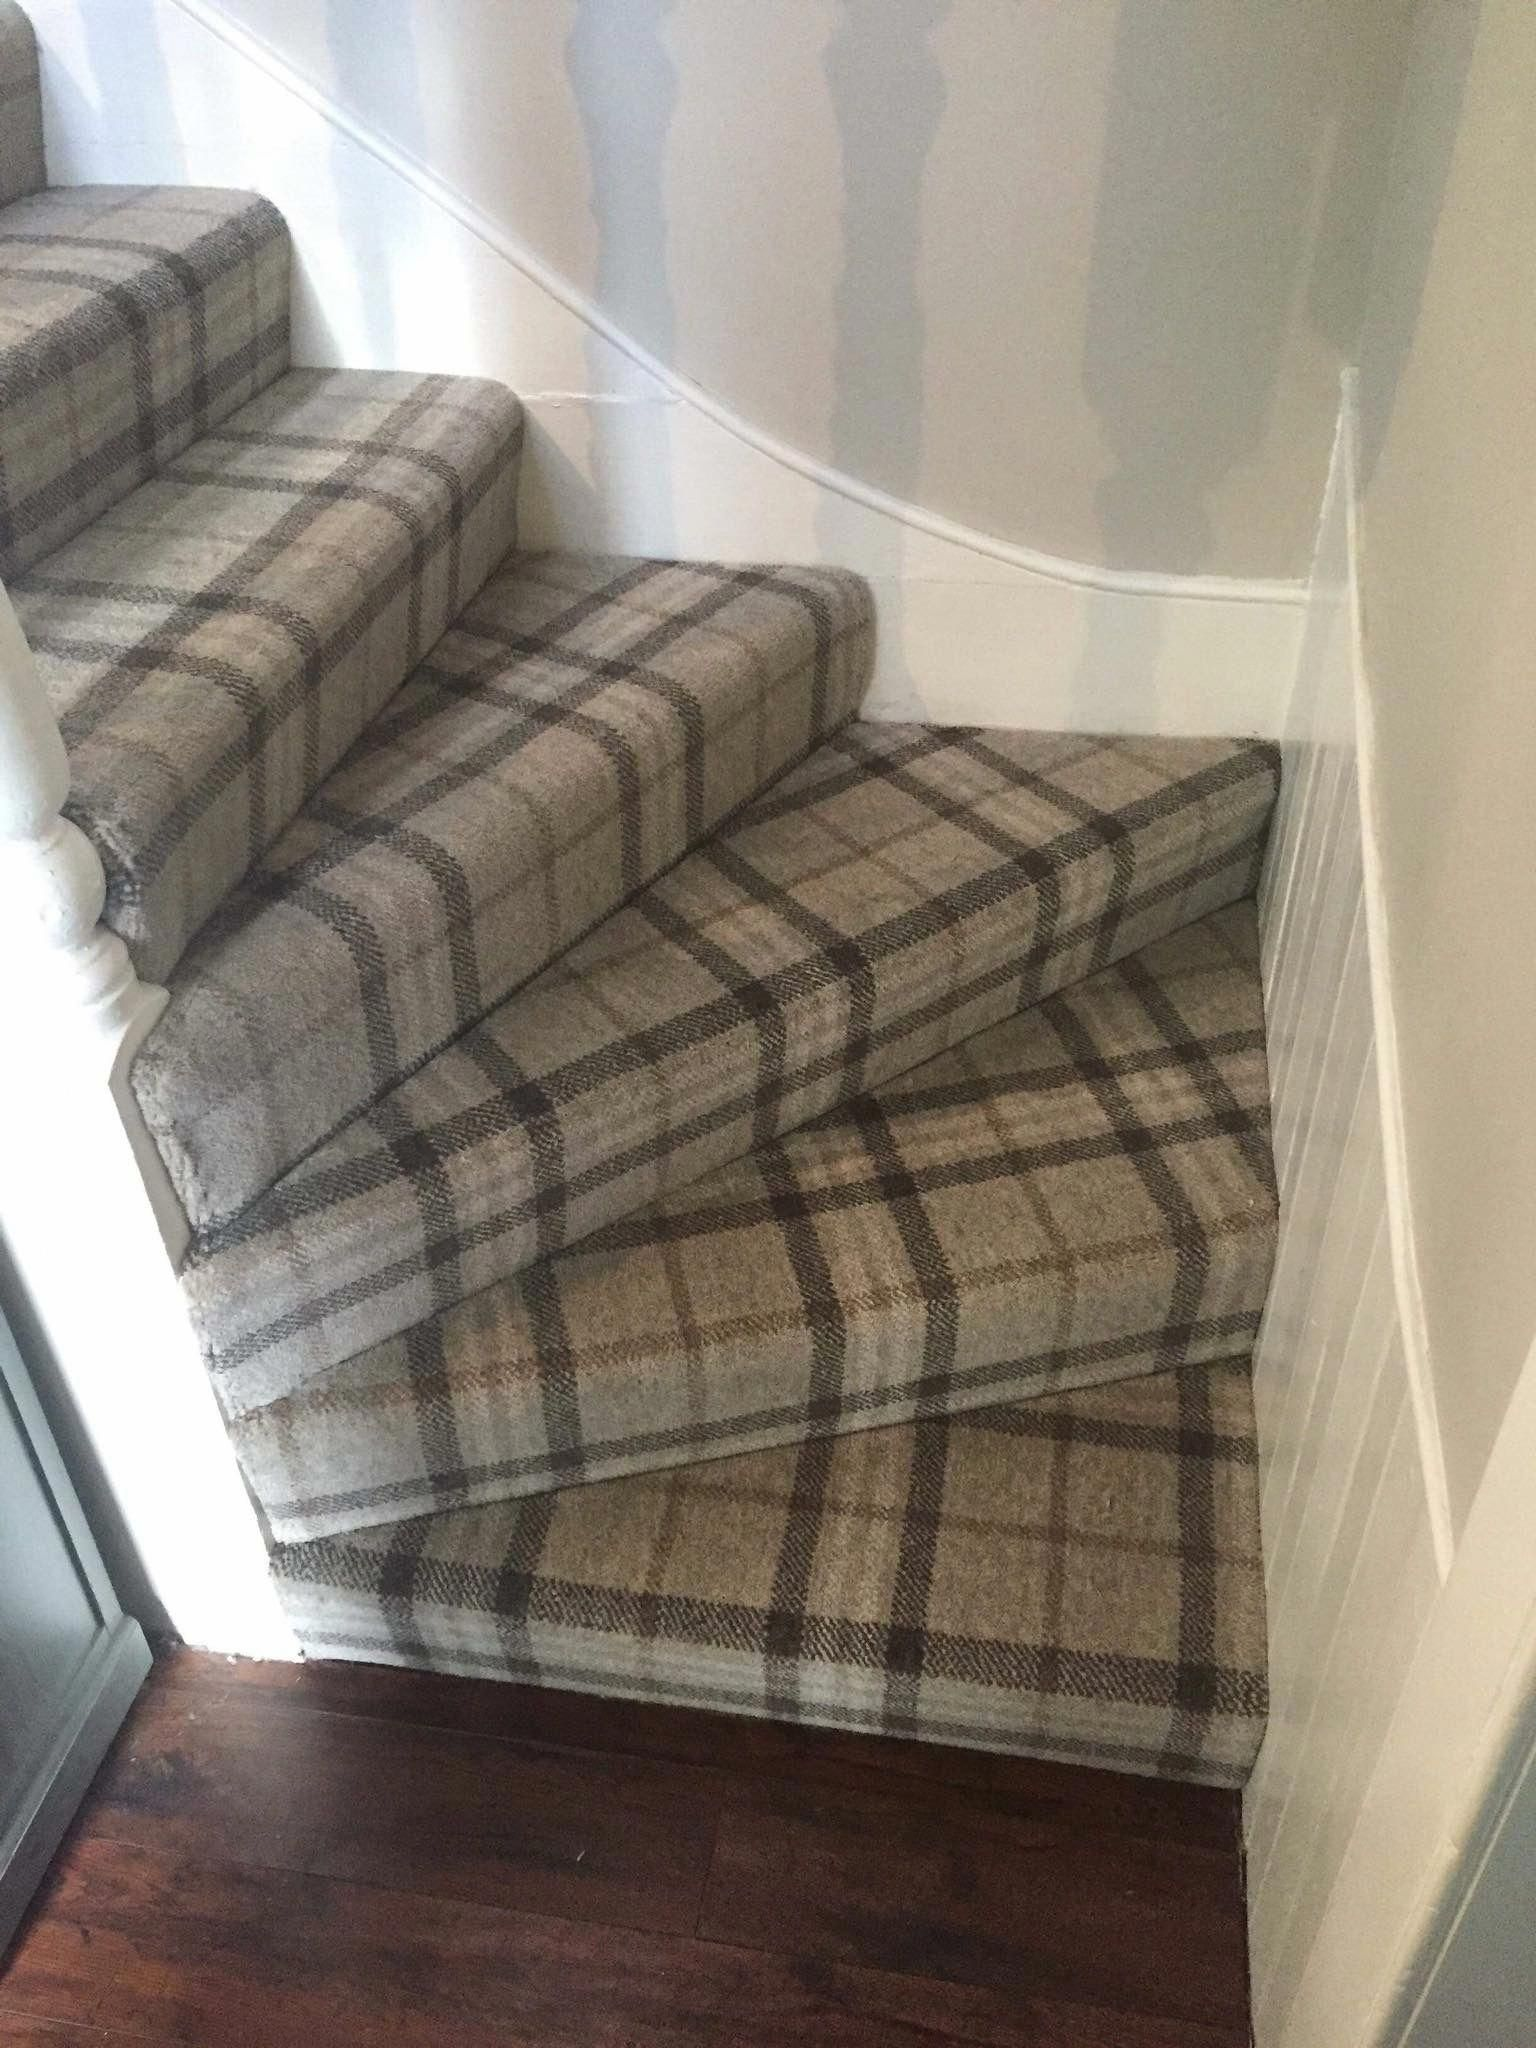 Carpet Runners Over Carpeted Stairs Staircarpetrunnersebay | Stair Runners For Carpeted Steps | Flooring | Youtube | Stair Rods | Wood | Rugs